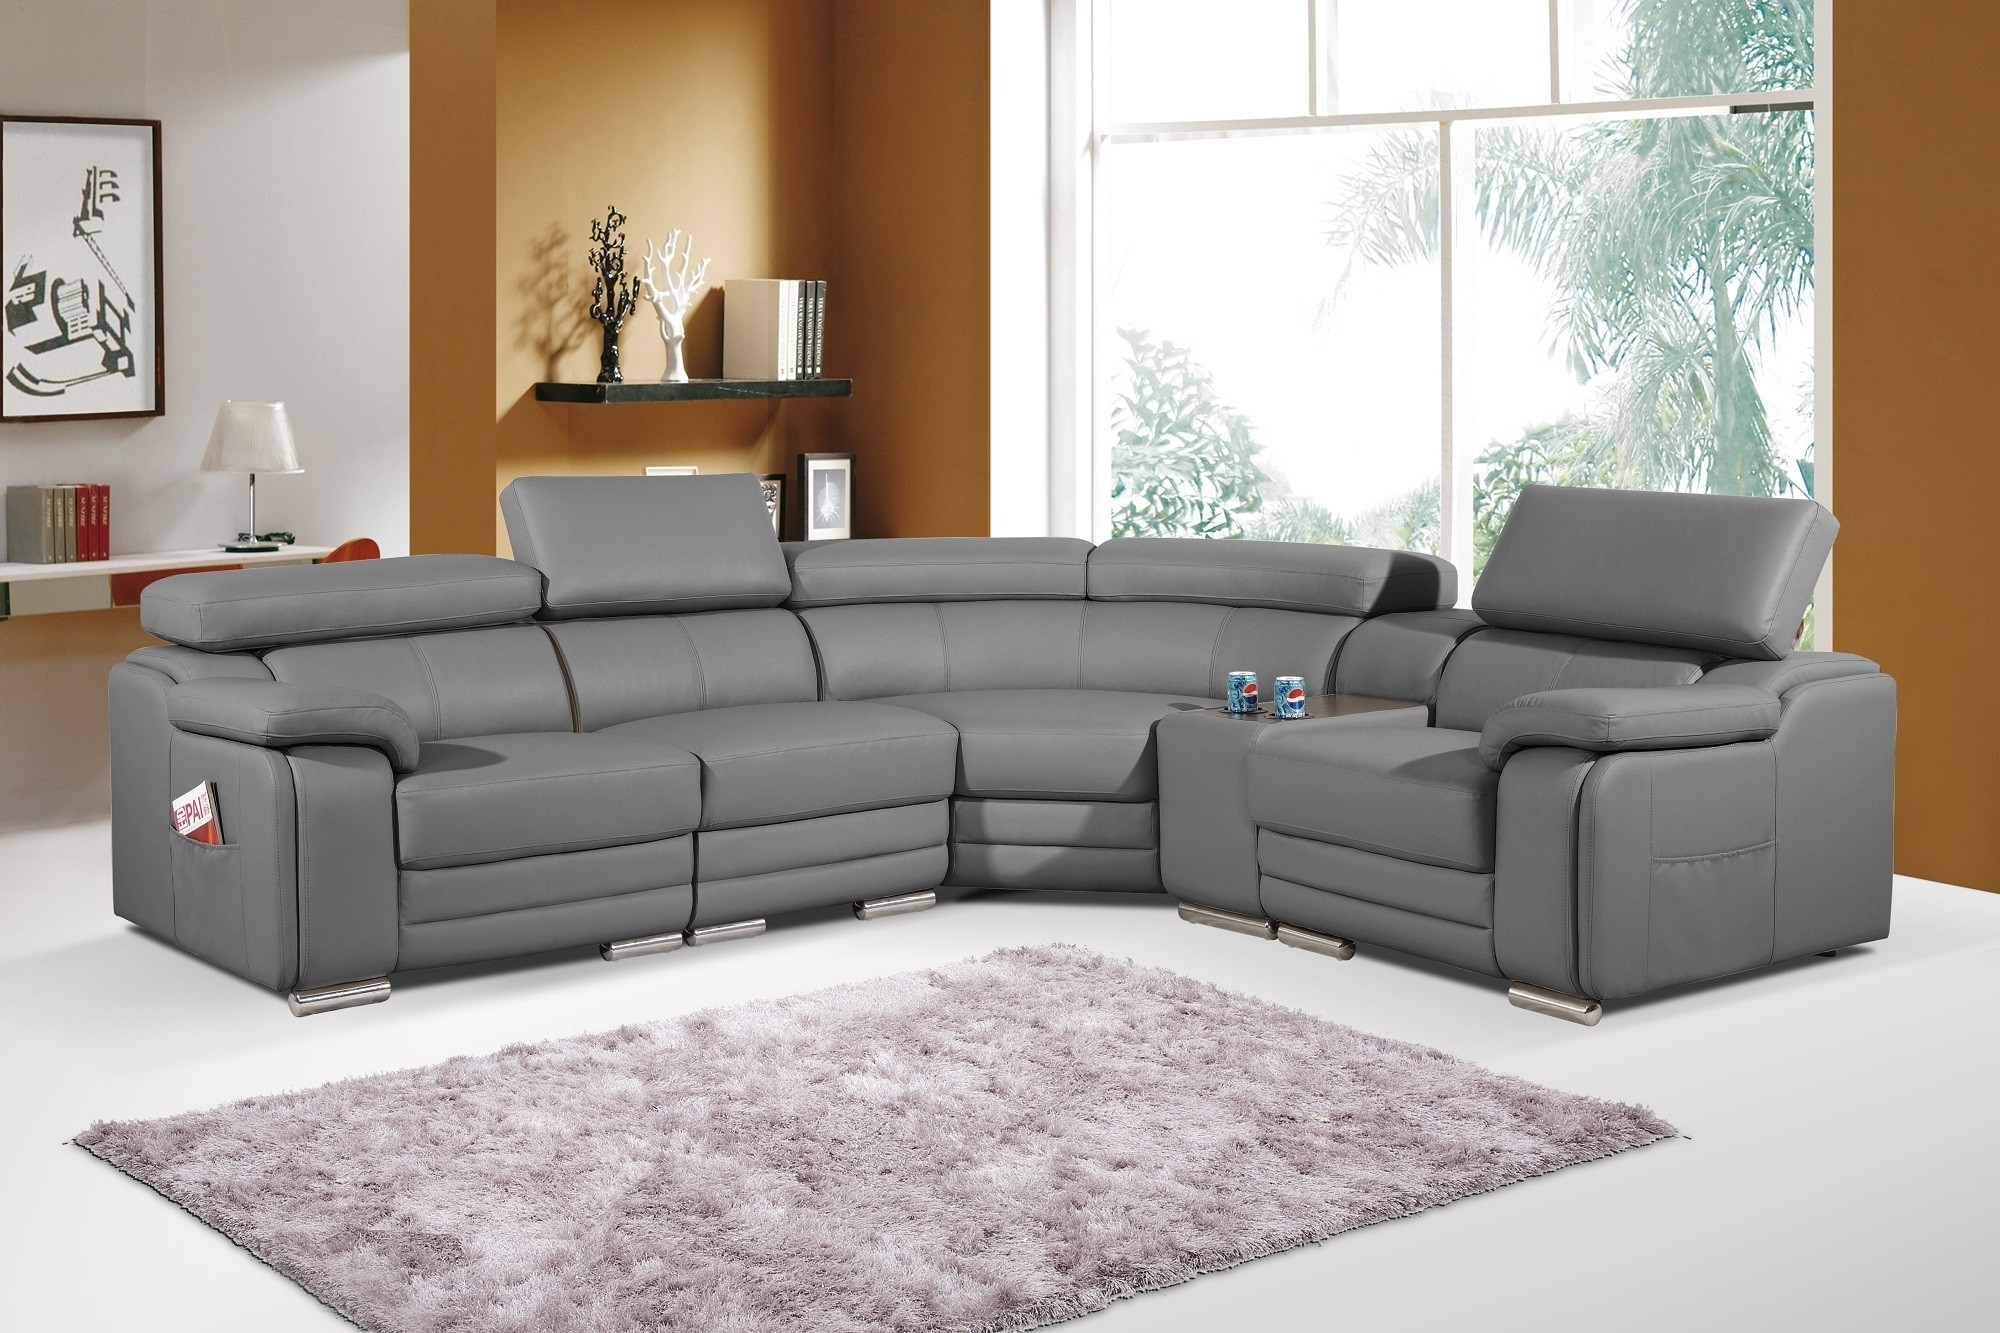 Leather Corner Sofas Intended For Most Recent Dakota Grey Bonded Leather Corner Sofa Left/hand (View 2 of 15)